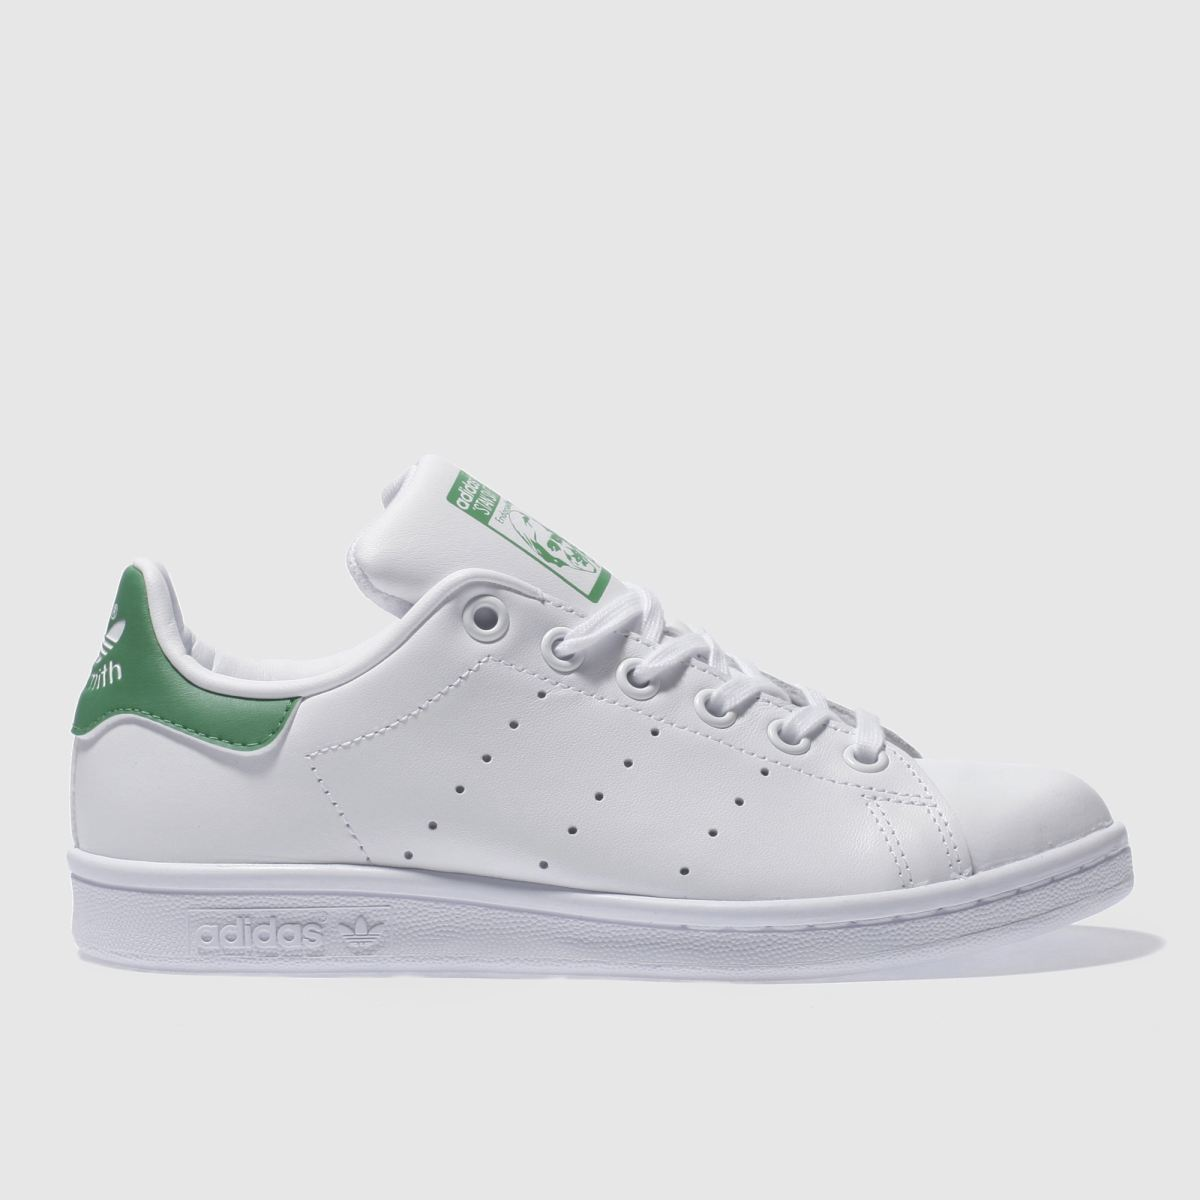 adidas white & green stan smith Boys Youth Trainers